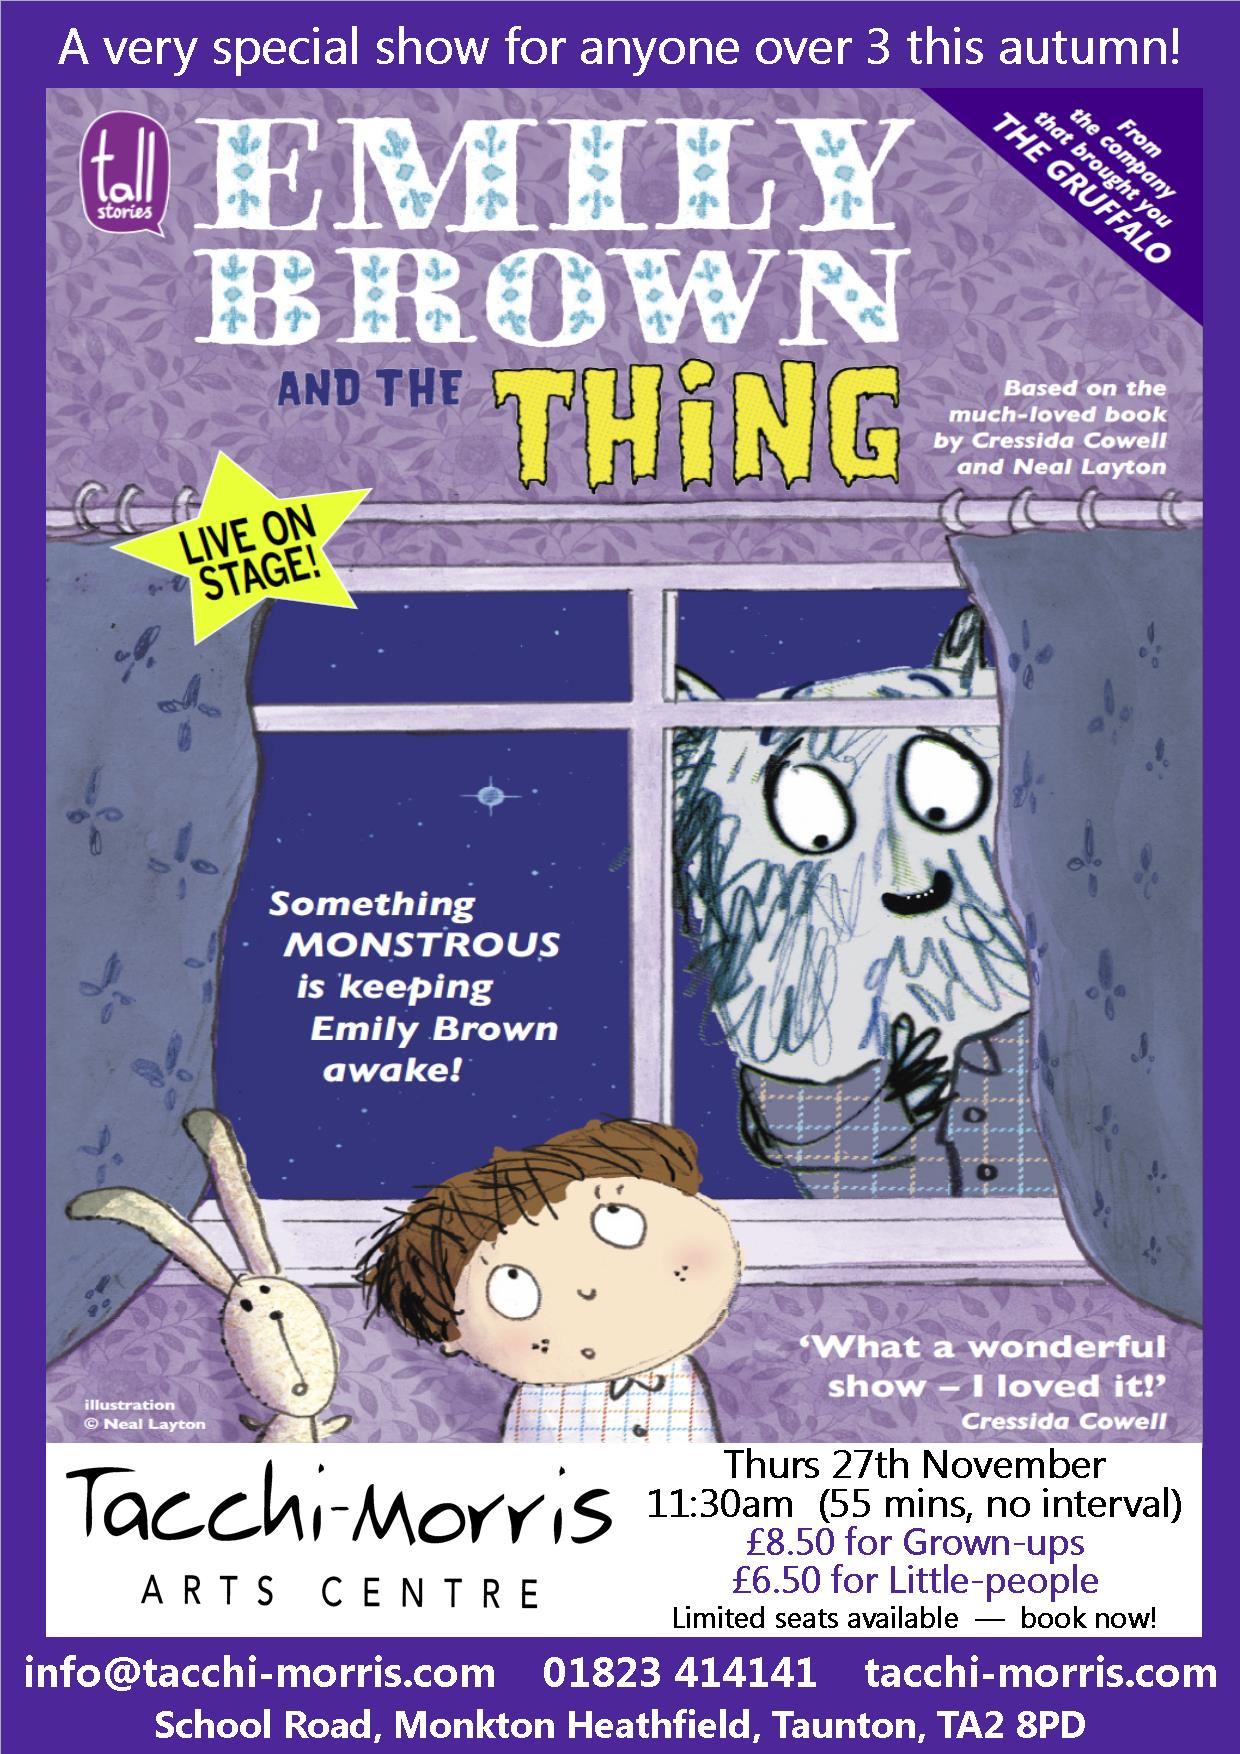 Emily Brown and The Thing by Tall Stories @ Tacchi-Morris Arts Centre | Monkton Heathfield | United Kingdom